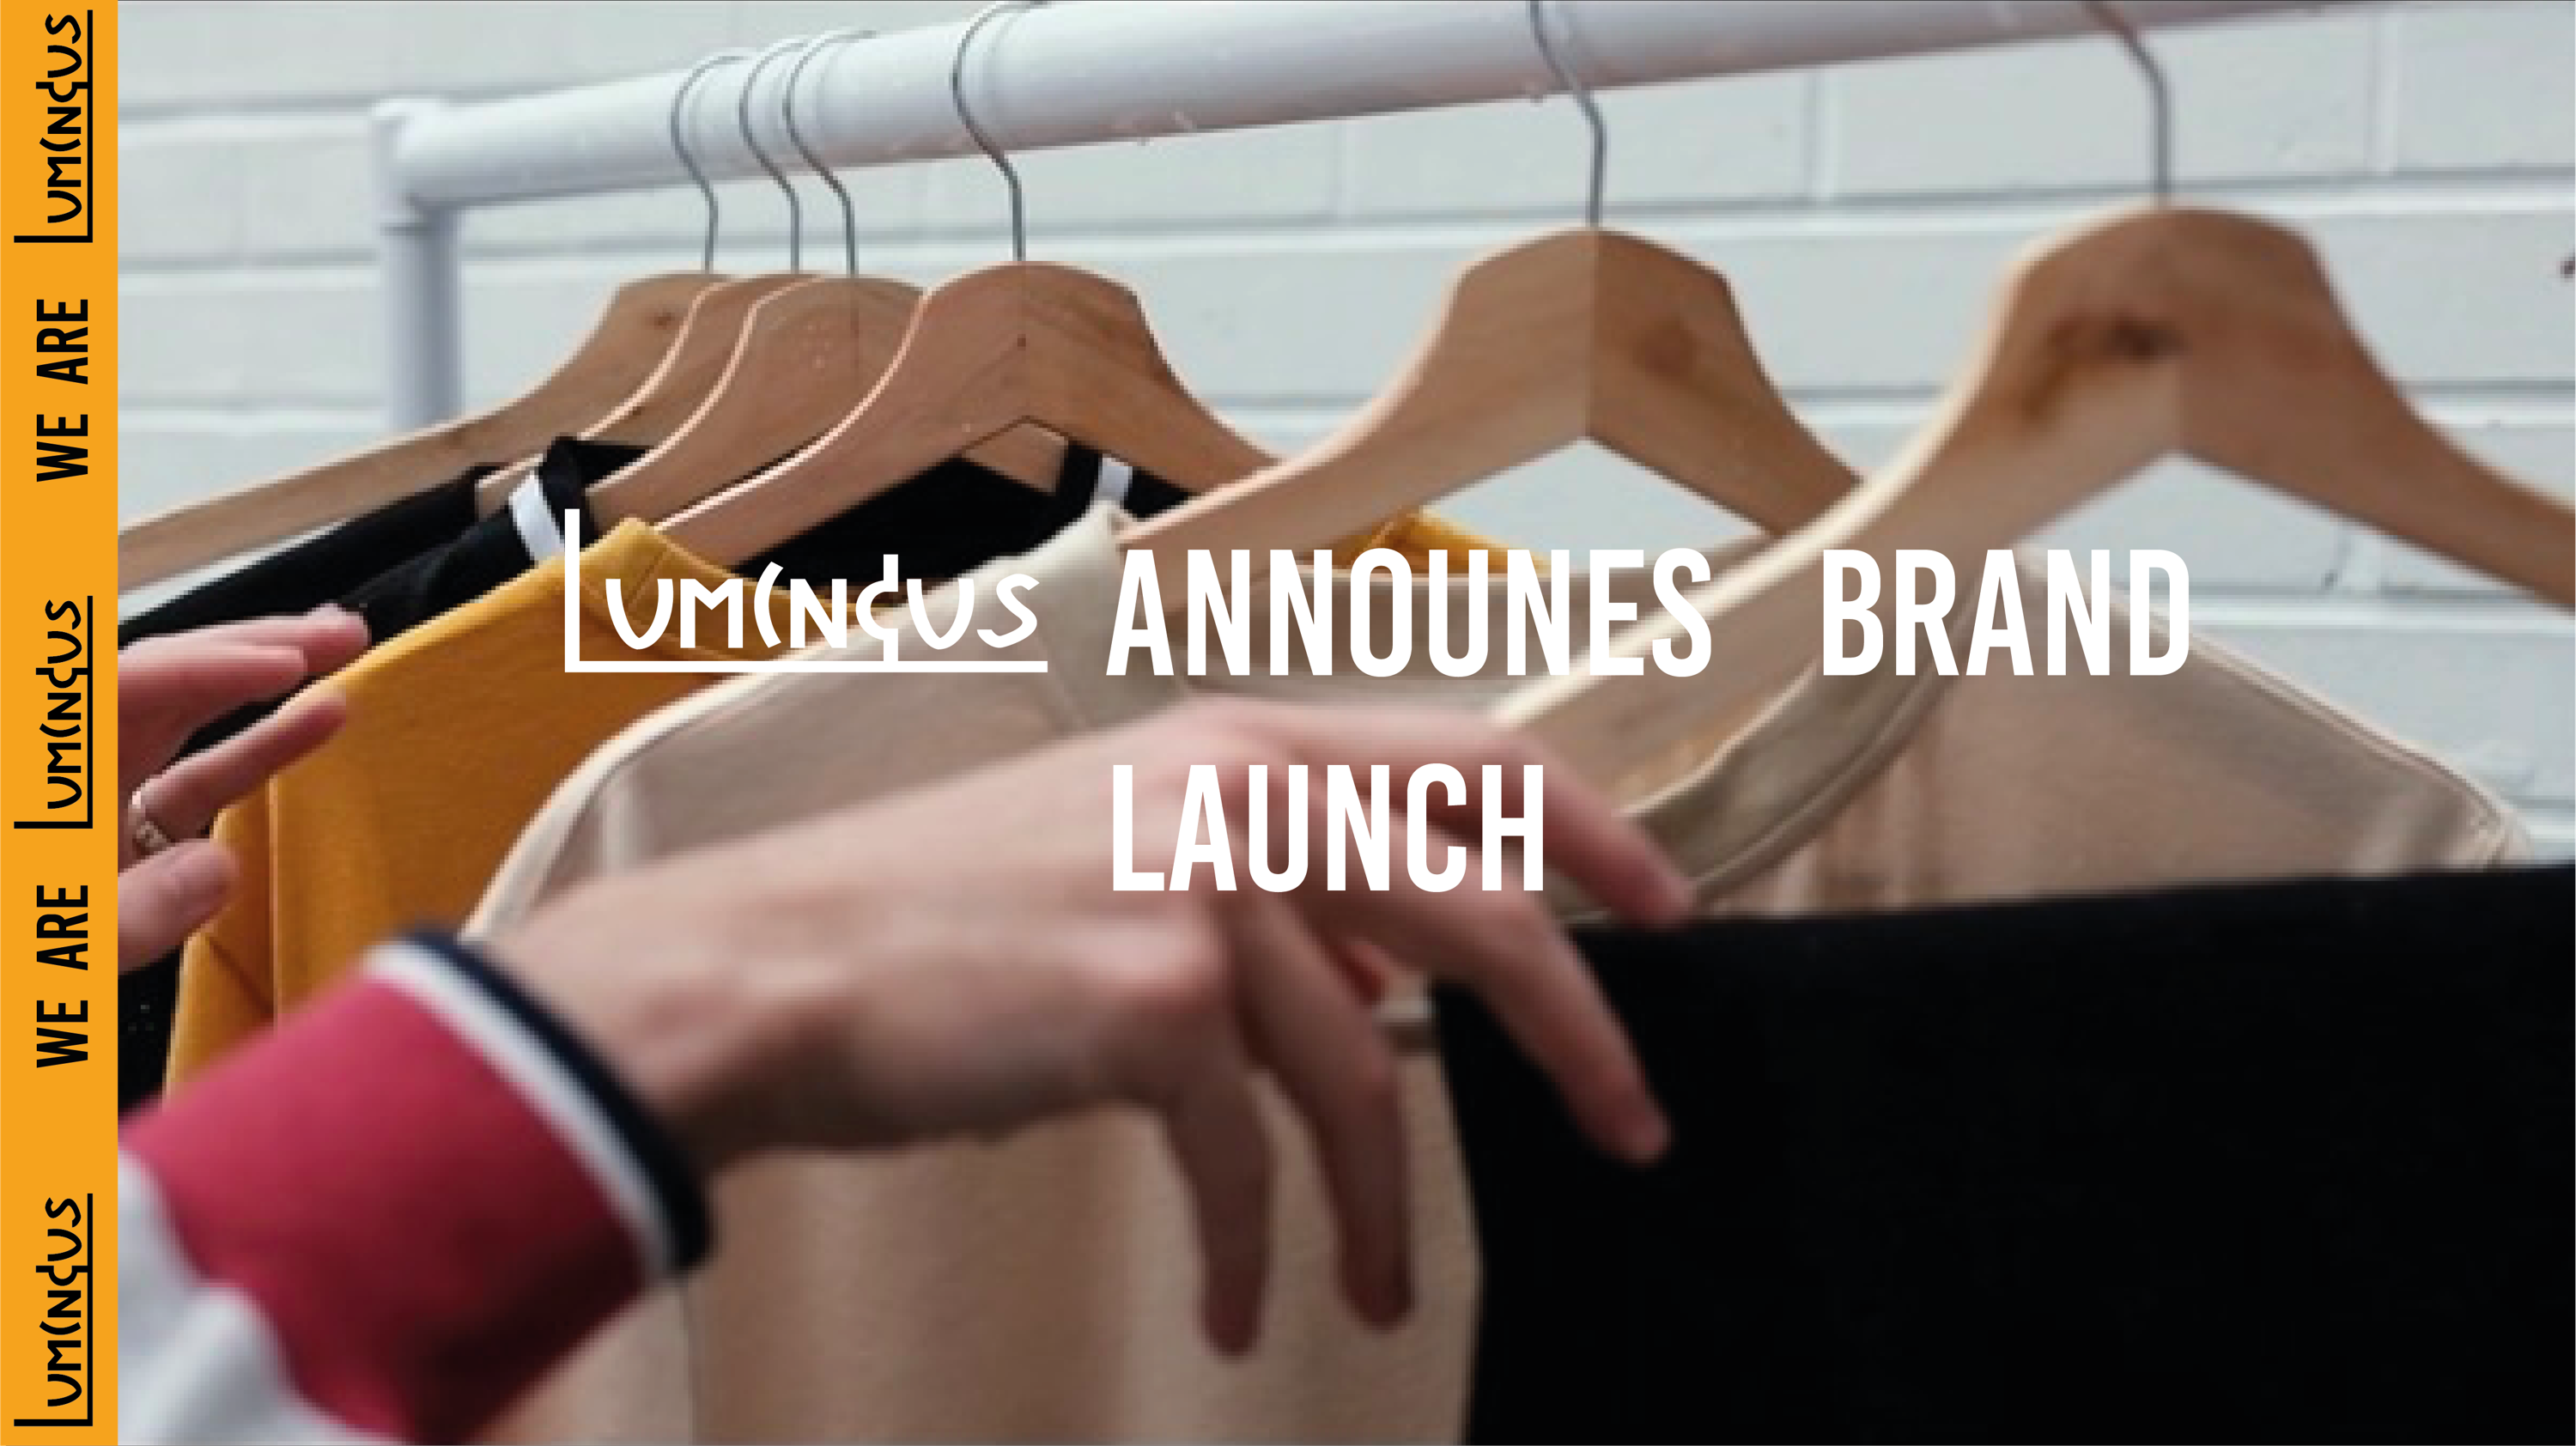 Luminous announces brand launch